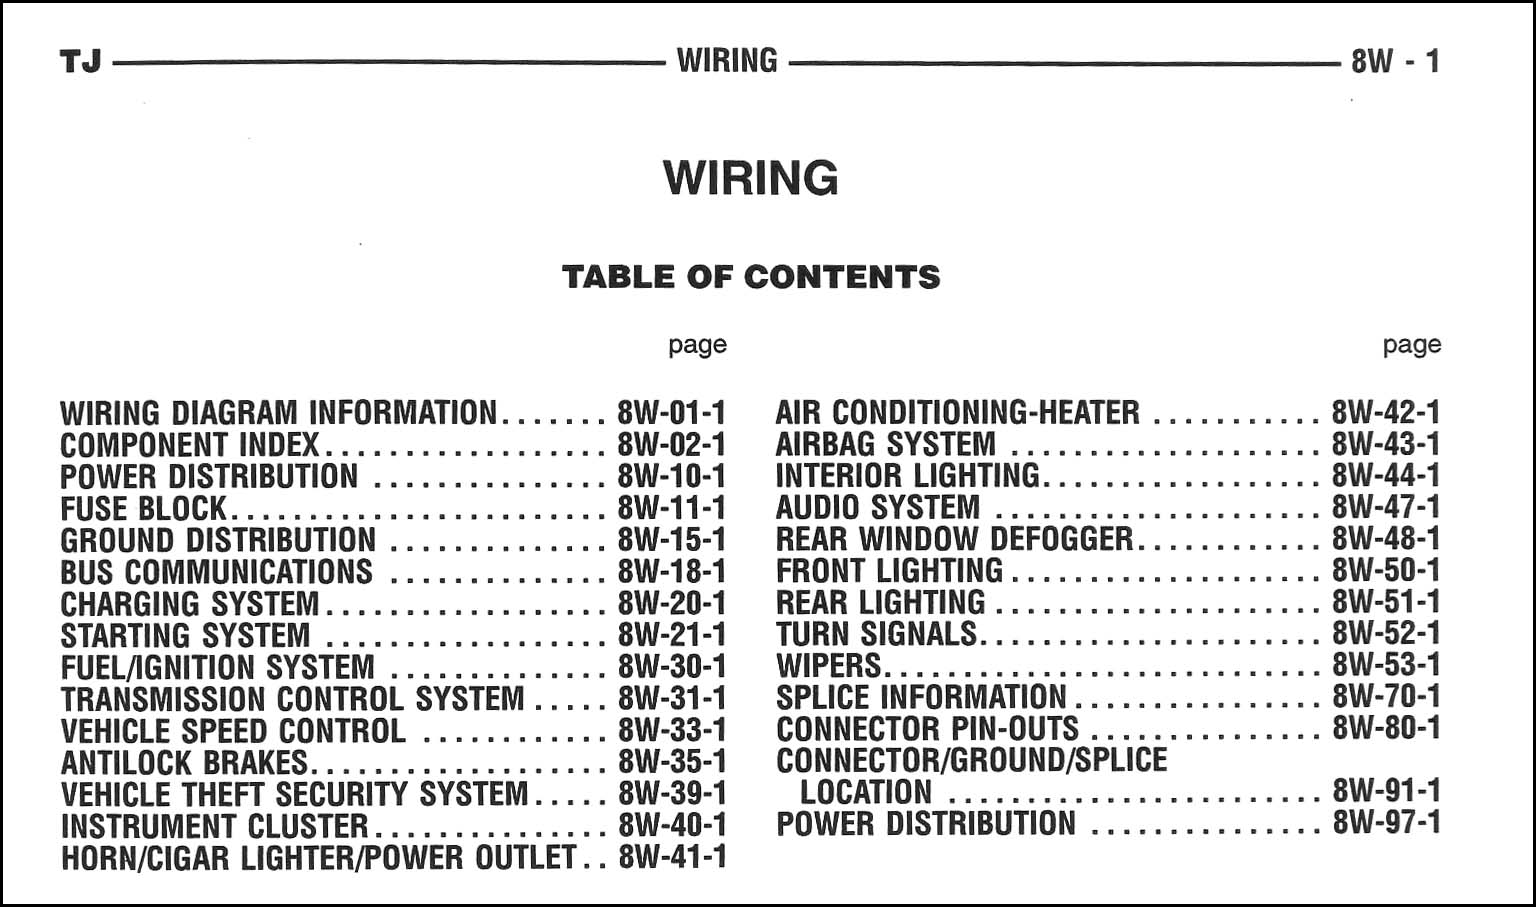 wiring diagram for 2004 jeep wrangler the wiring diagram 2002 jeep wrangler wiring diagram diagram wiring diagram